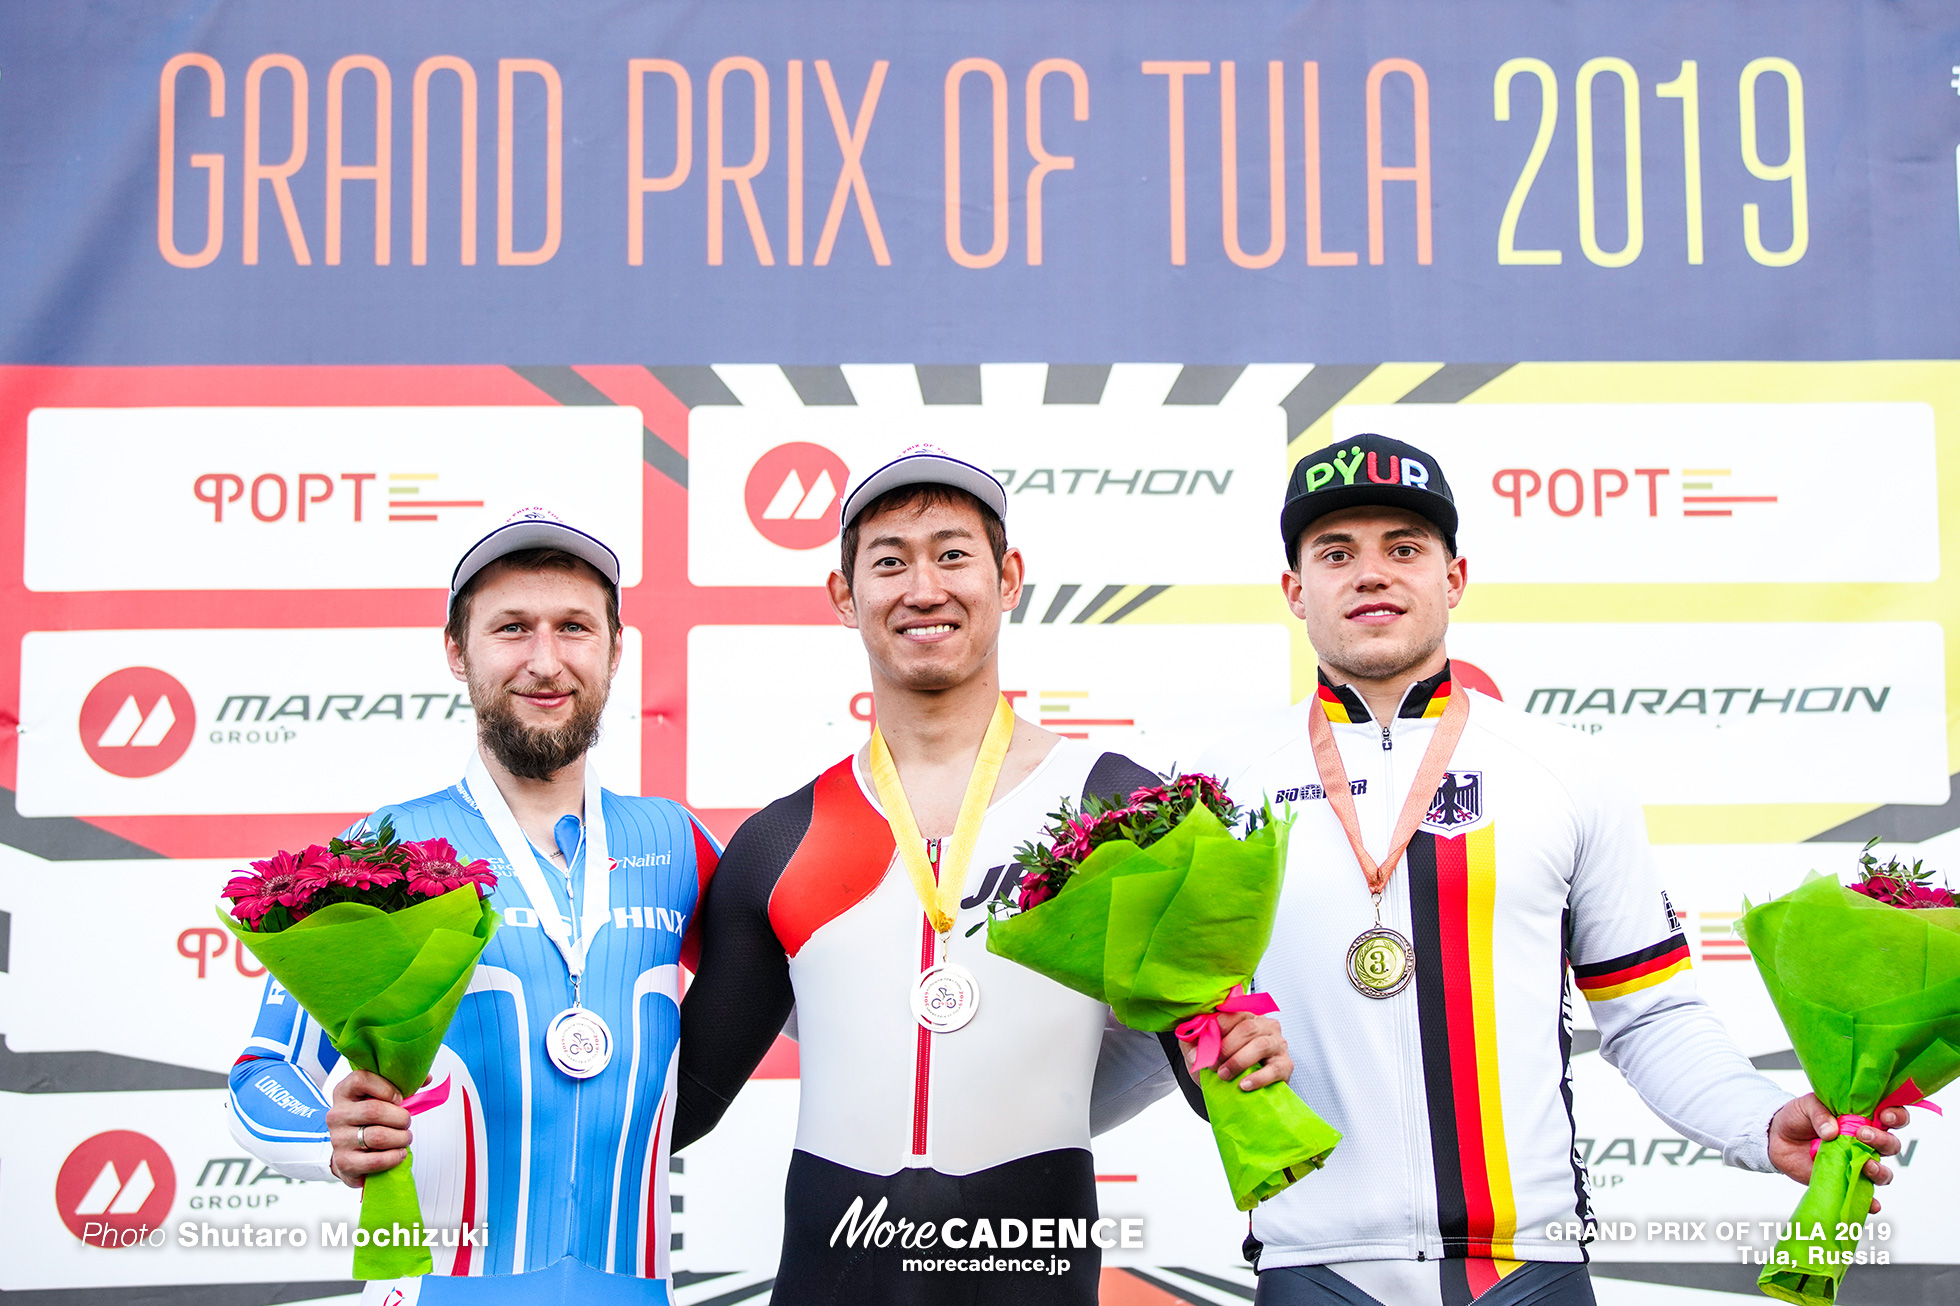 Men's Sprint Finals / GRAND PRIX OF TULA 2019